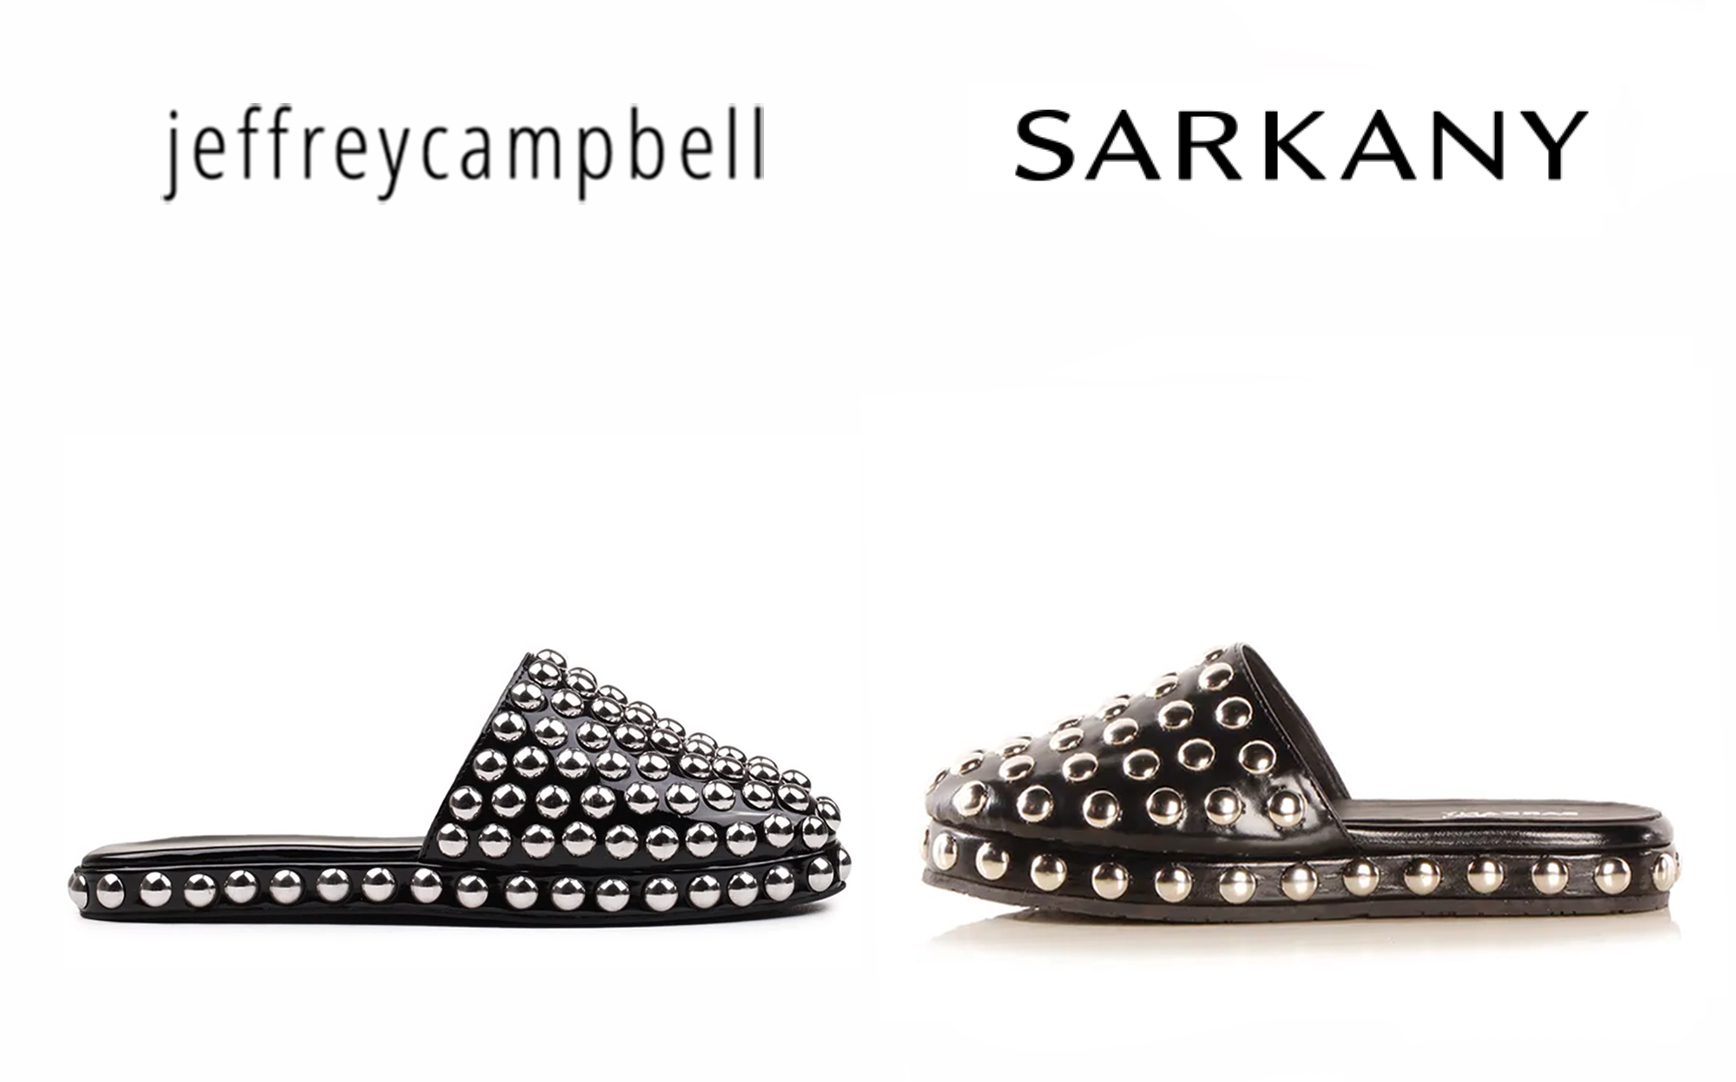 Copias_Argentinas_Inspiraciones_Marcas_que_Copian_Jeffrey_Campbell_Rosebay_Studded_Slippers_Mules_Ricky_Sarkany_Slippers_Cool_Verano_2019_2018.jpg